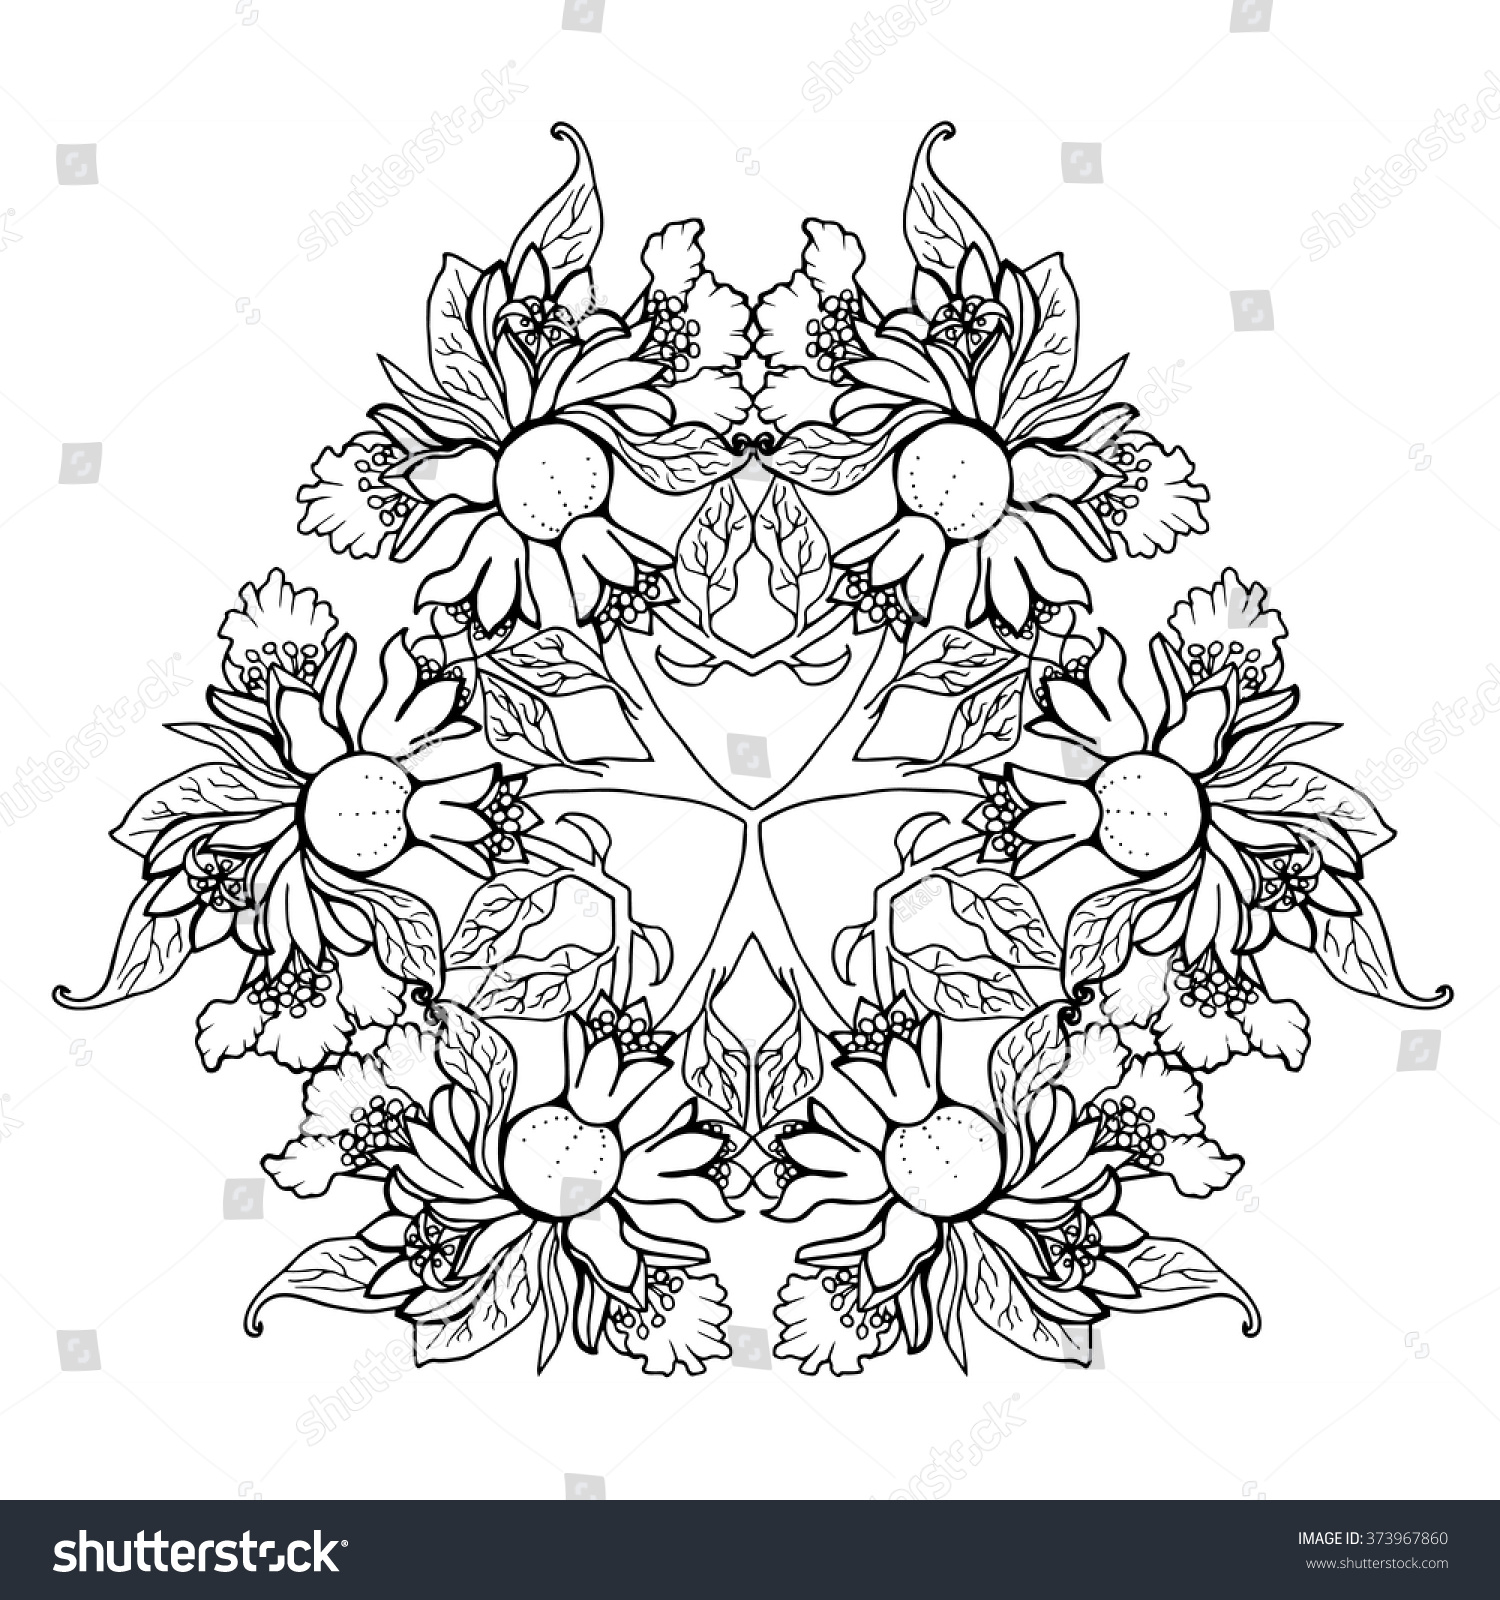 Flower arrangement coloring pages - Pomegranate Flowers Vector Mandala Hand Drawn Tropical Art Exotic Plant Design Summer Adult Coloring Page In